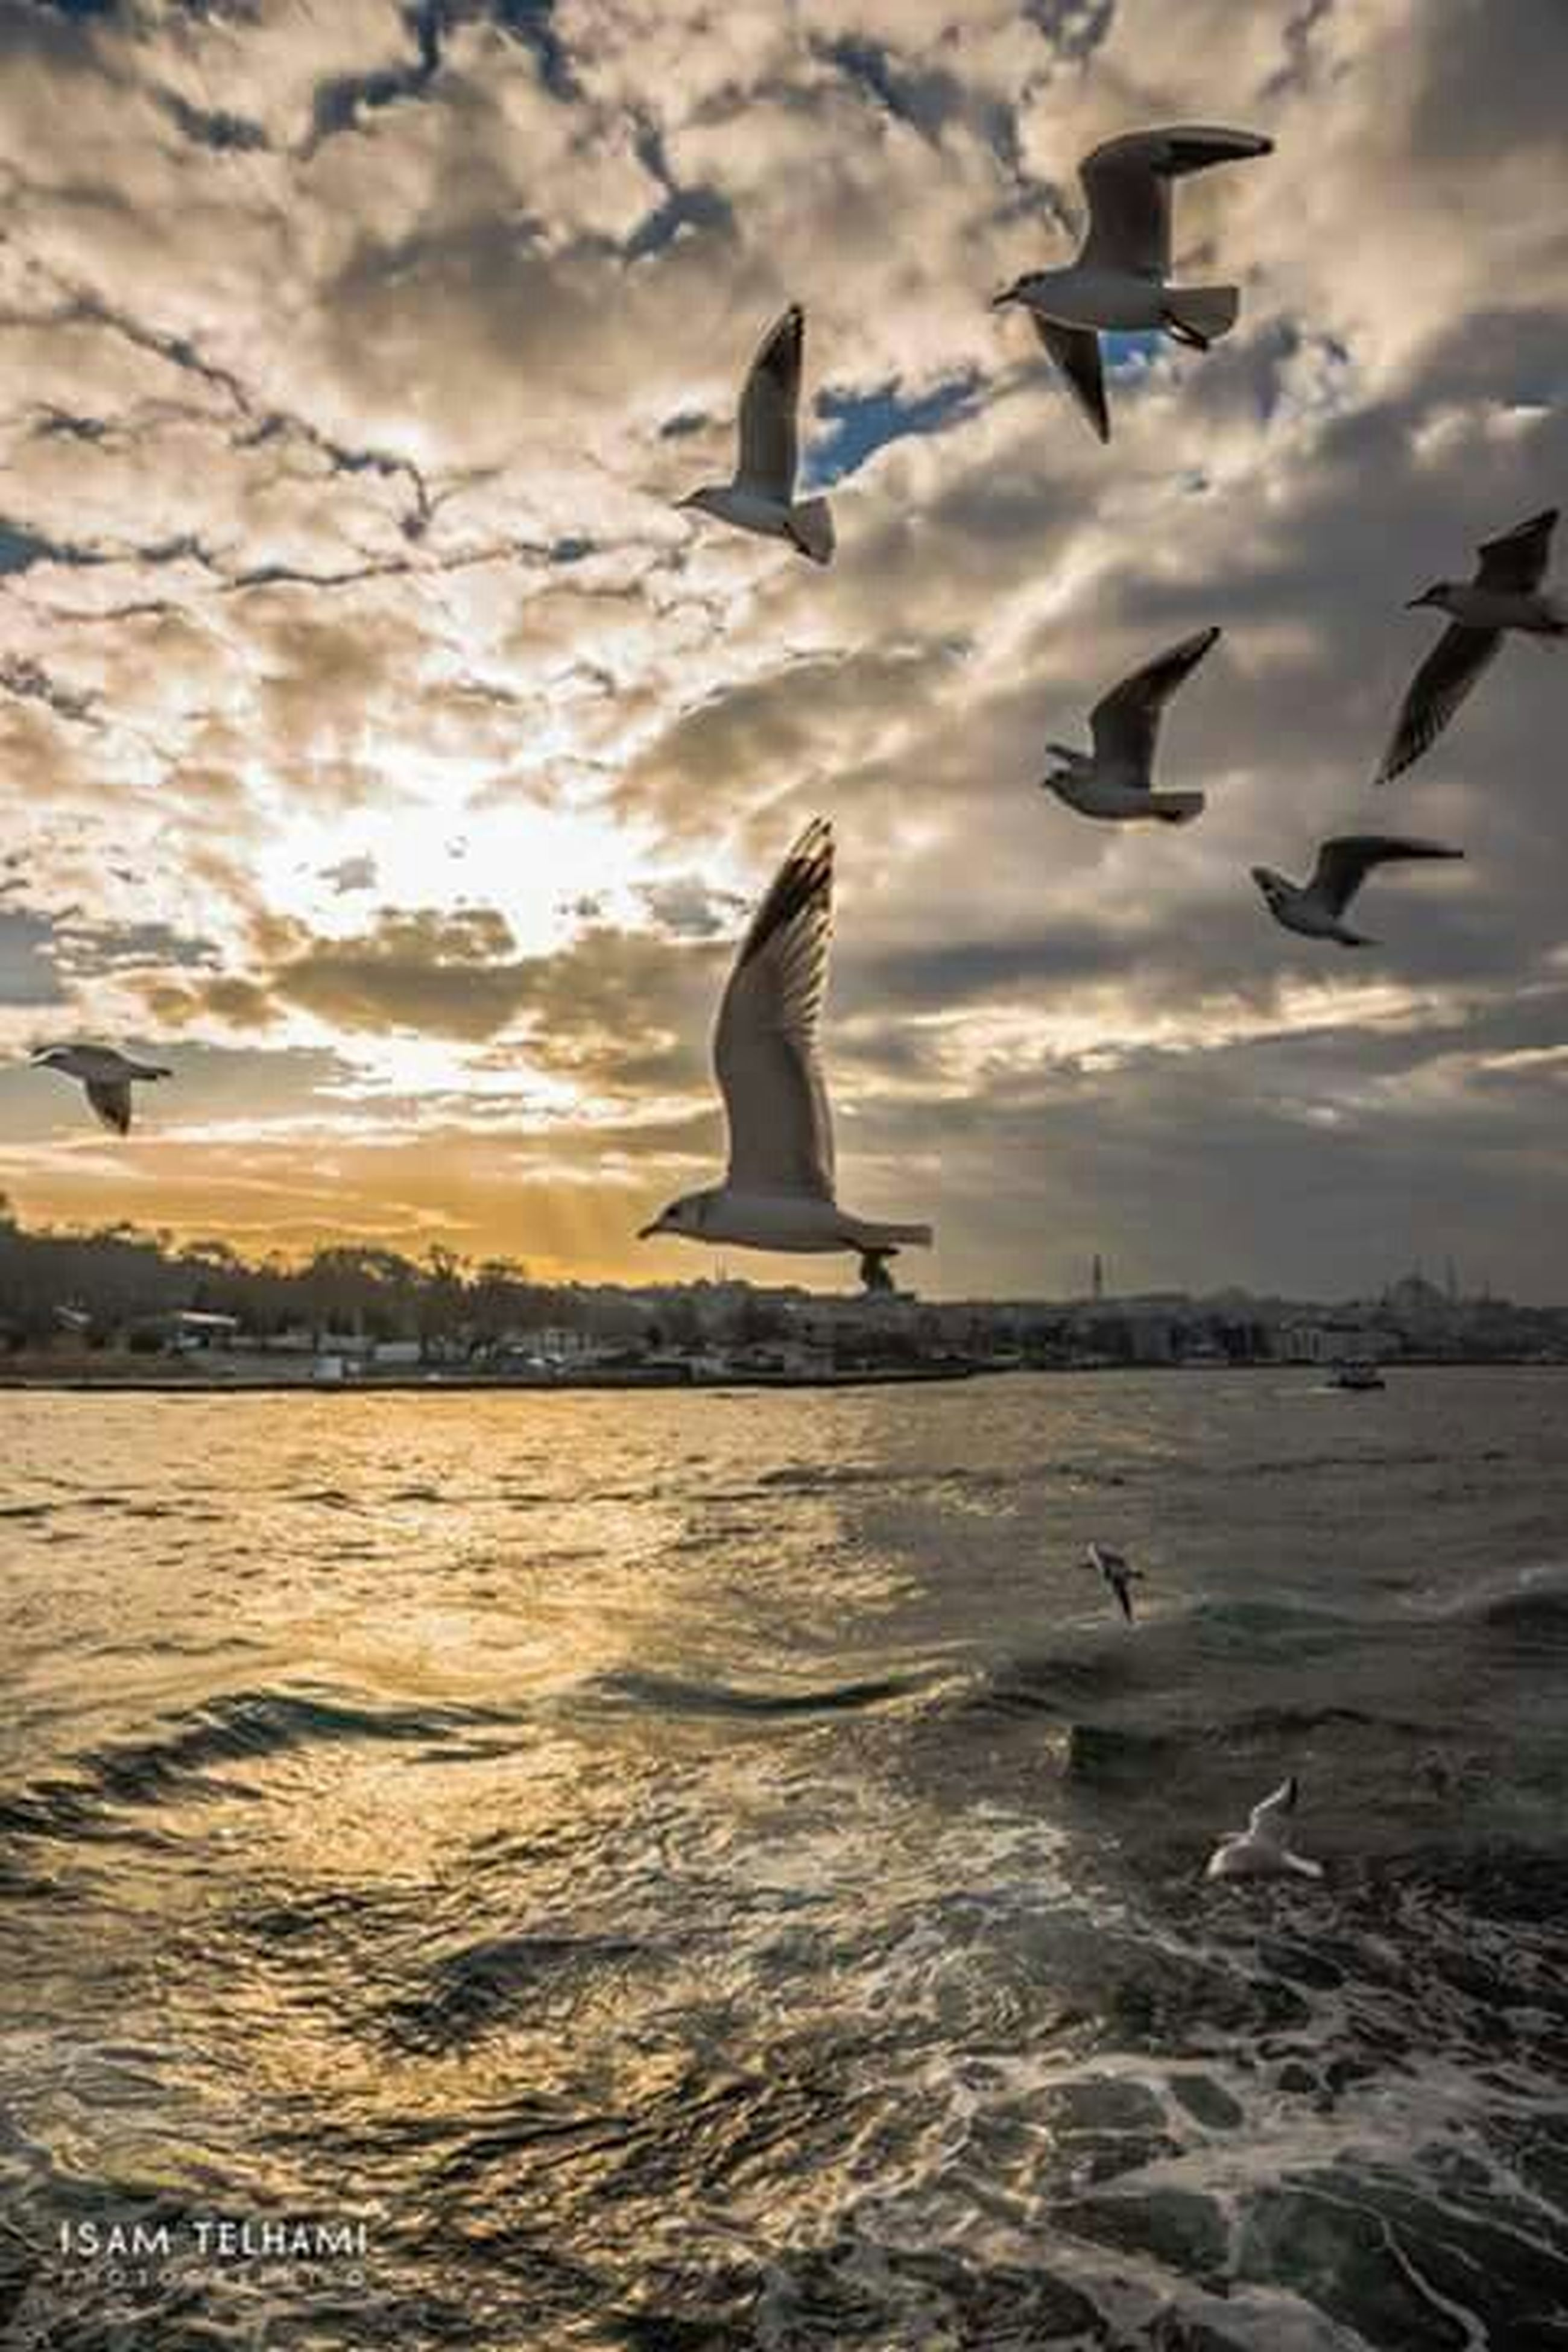 bird, flying, animals in the wild, animal themes, water, seagull, wildlife, sky, sea, spread wings, cloud - sky, nature, mid-air, silhouette, cloud, beauty in nature, sunset, cloudy, scenics